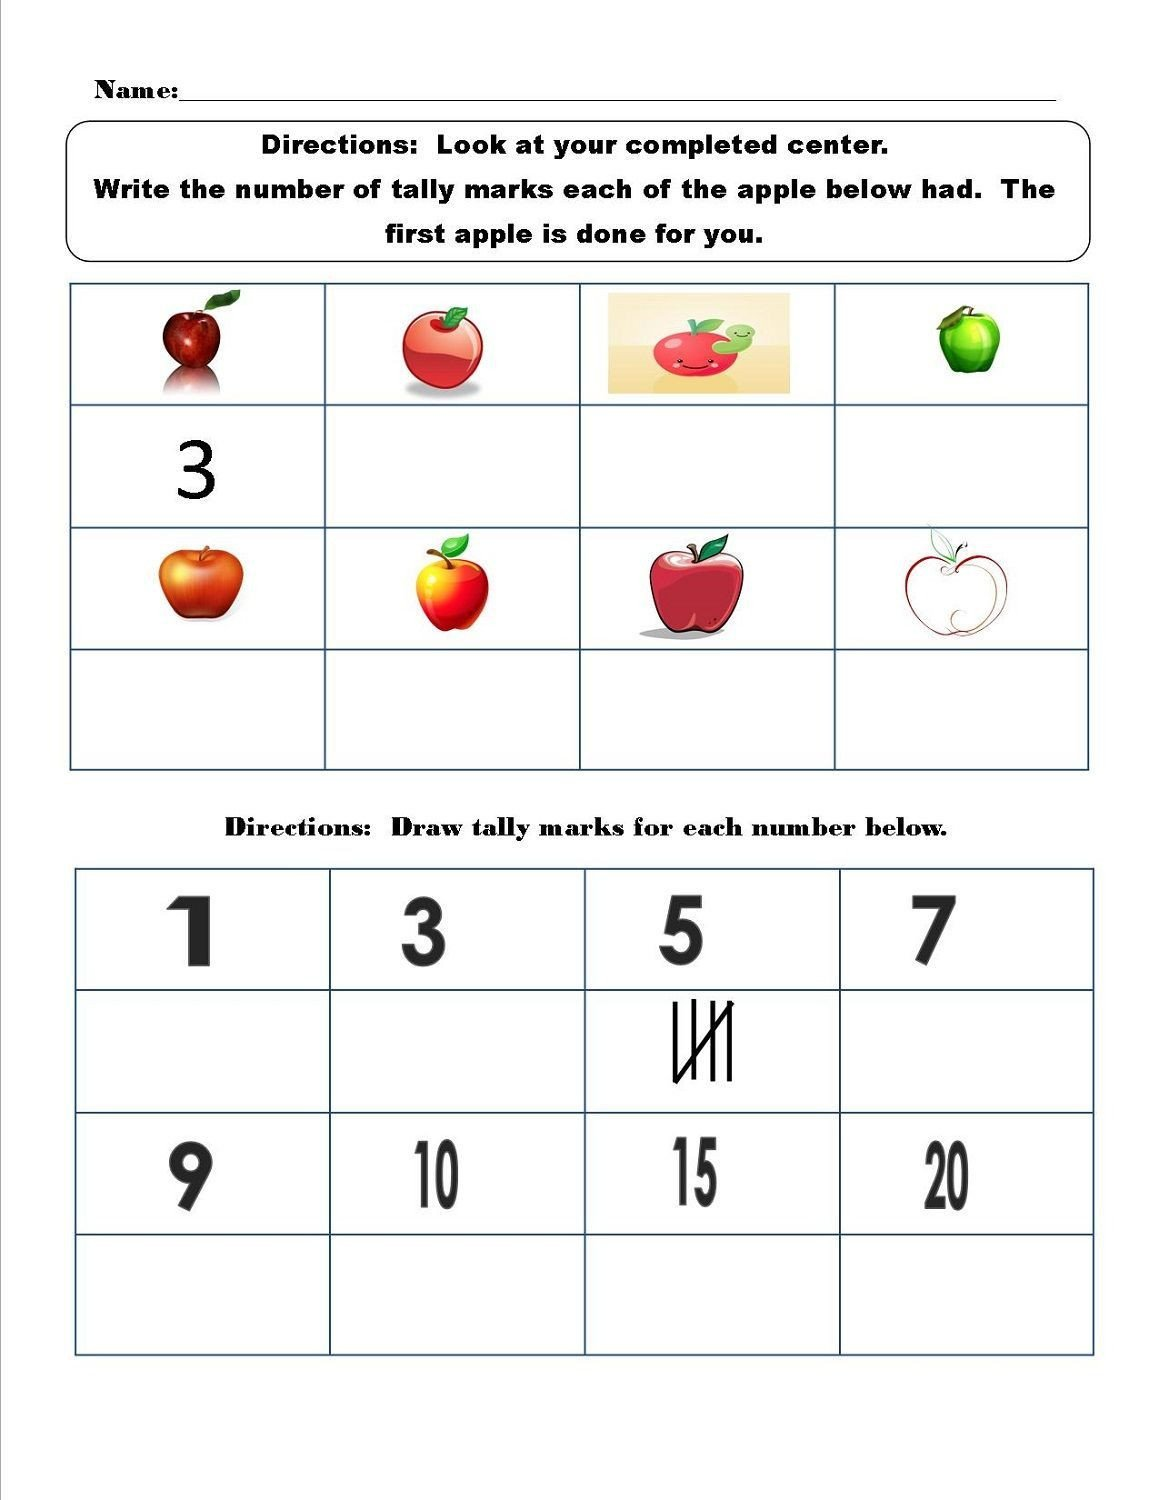 Kindergarten Tally Marks Worksheet Tally Mark Worksheet for Kids K5 Worksheets